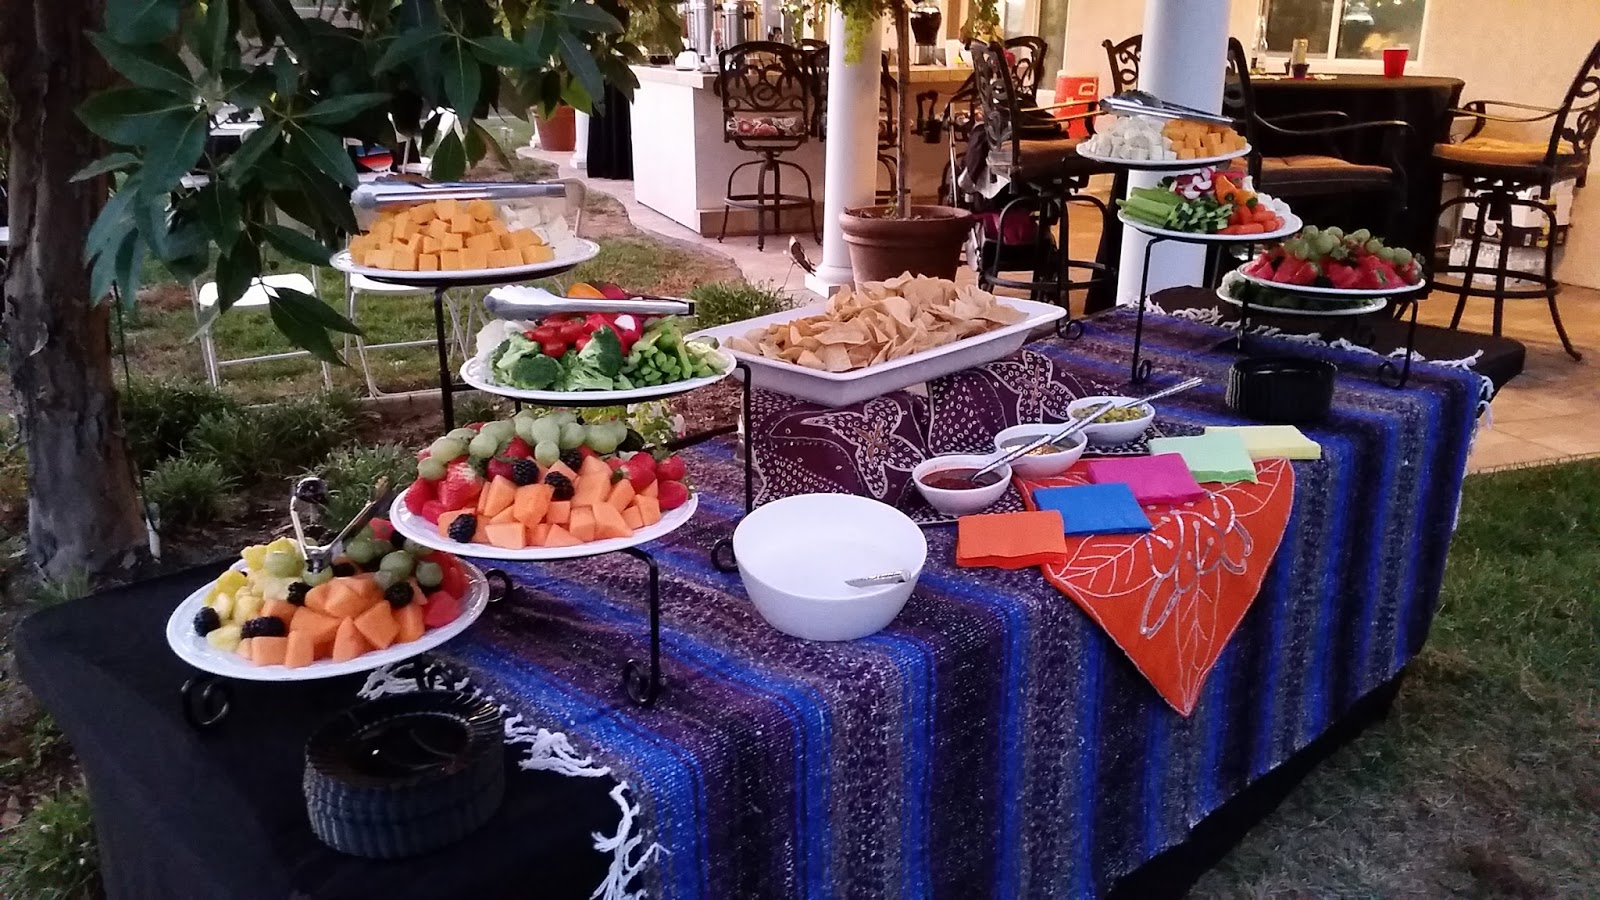 & Appealing Buffet Table Set Up Ideas - Best Image Engine - tagranks.com